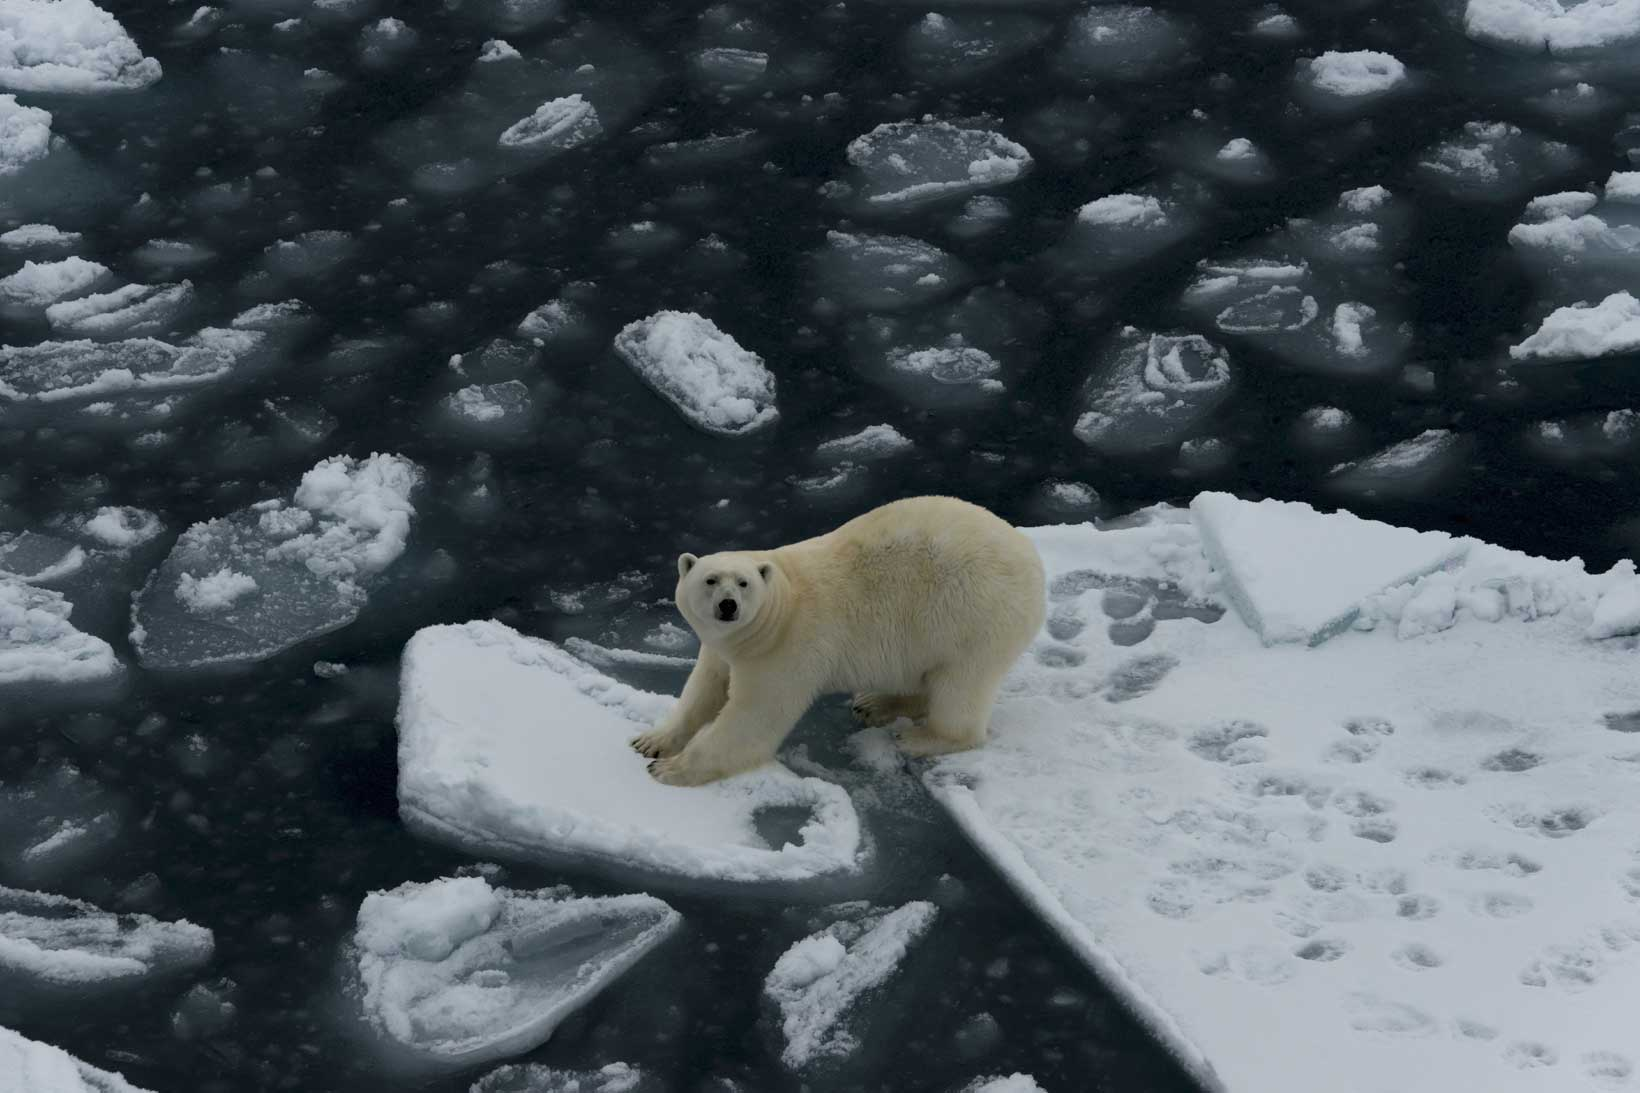 Polar bear stranded